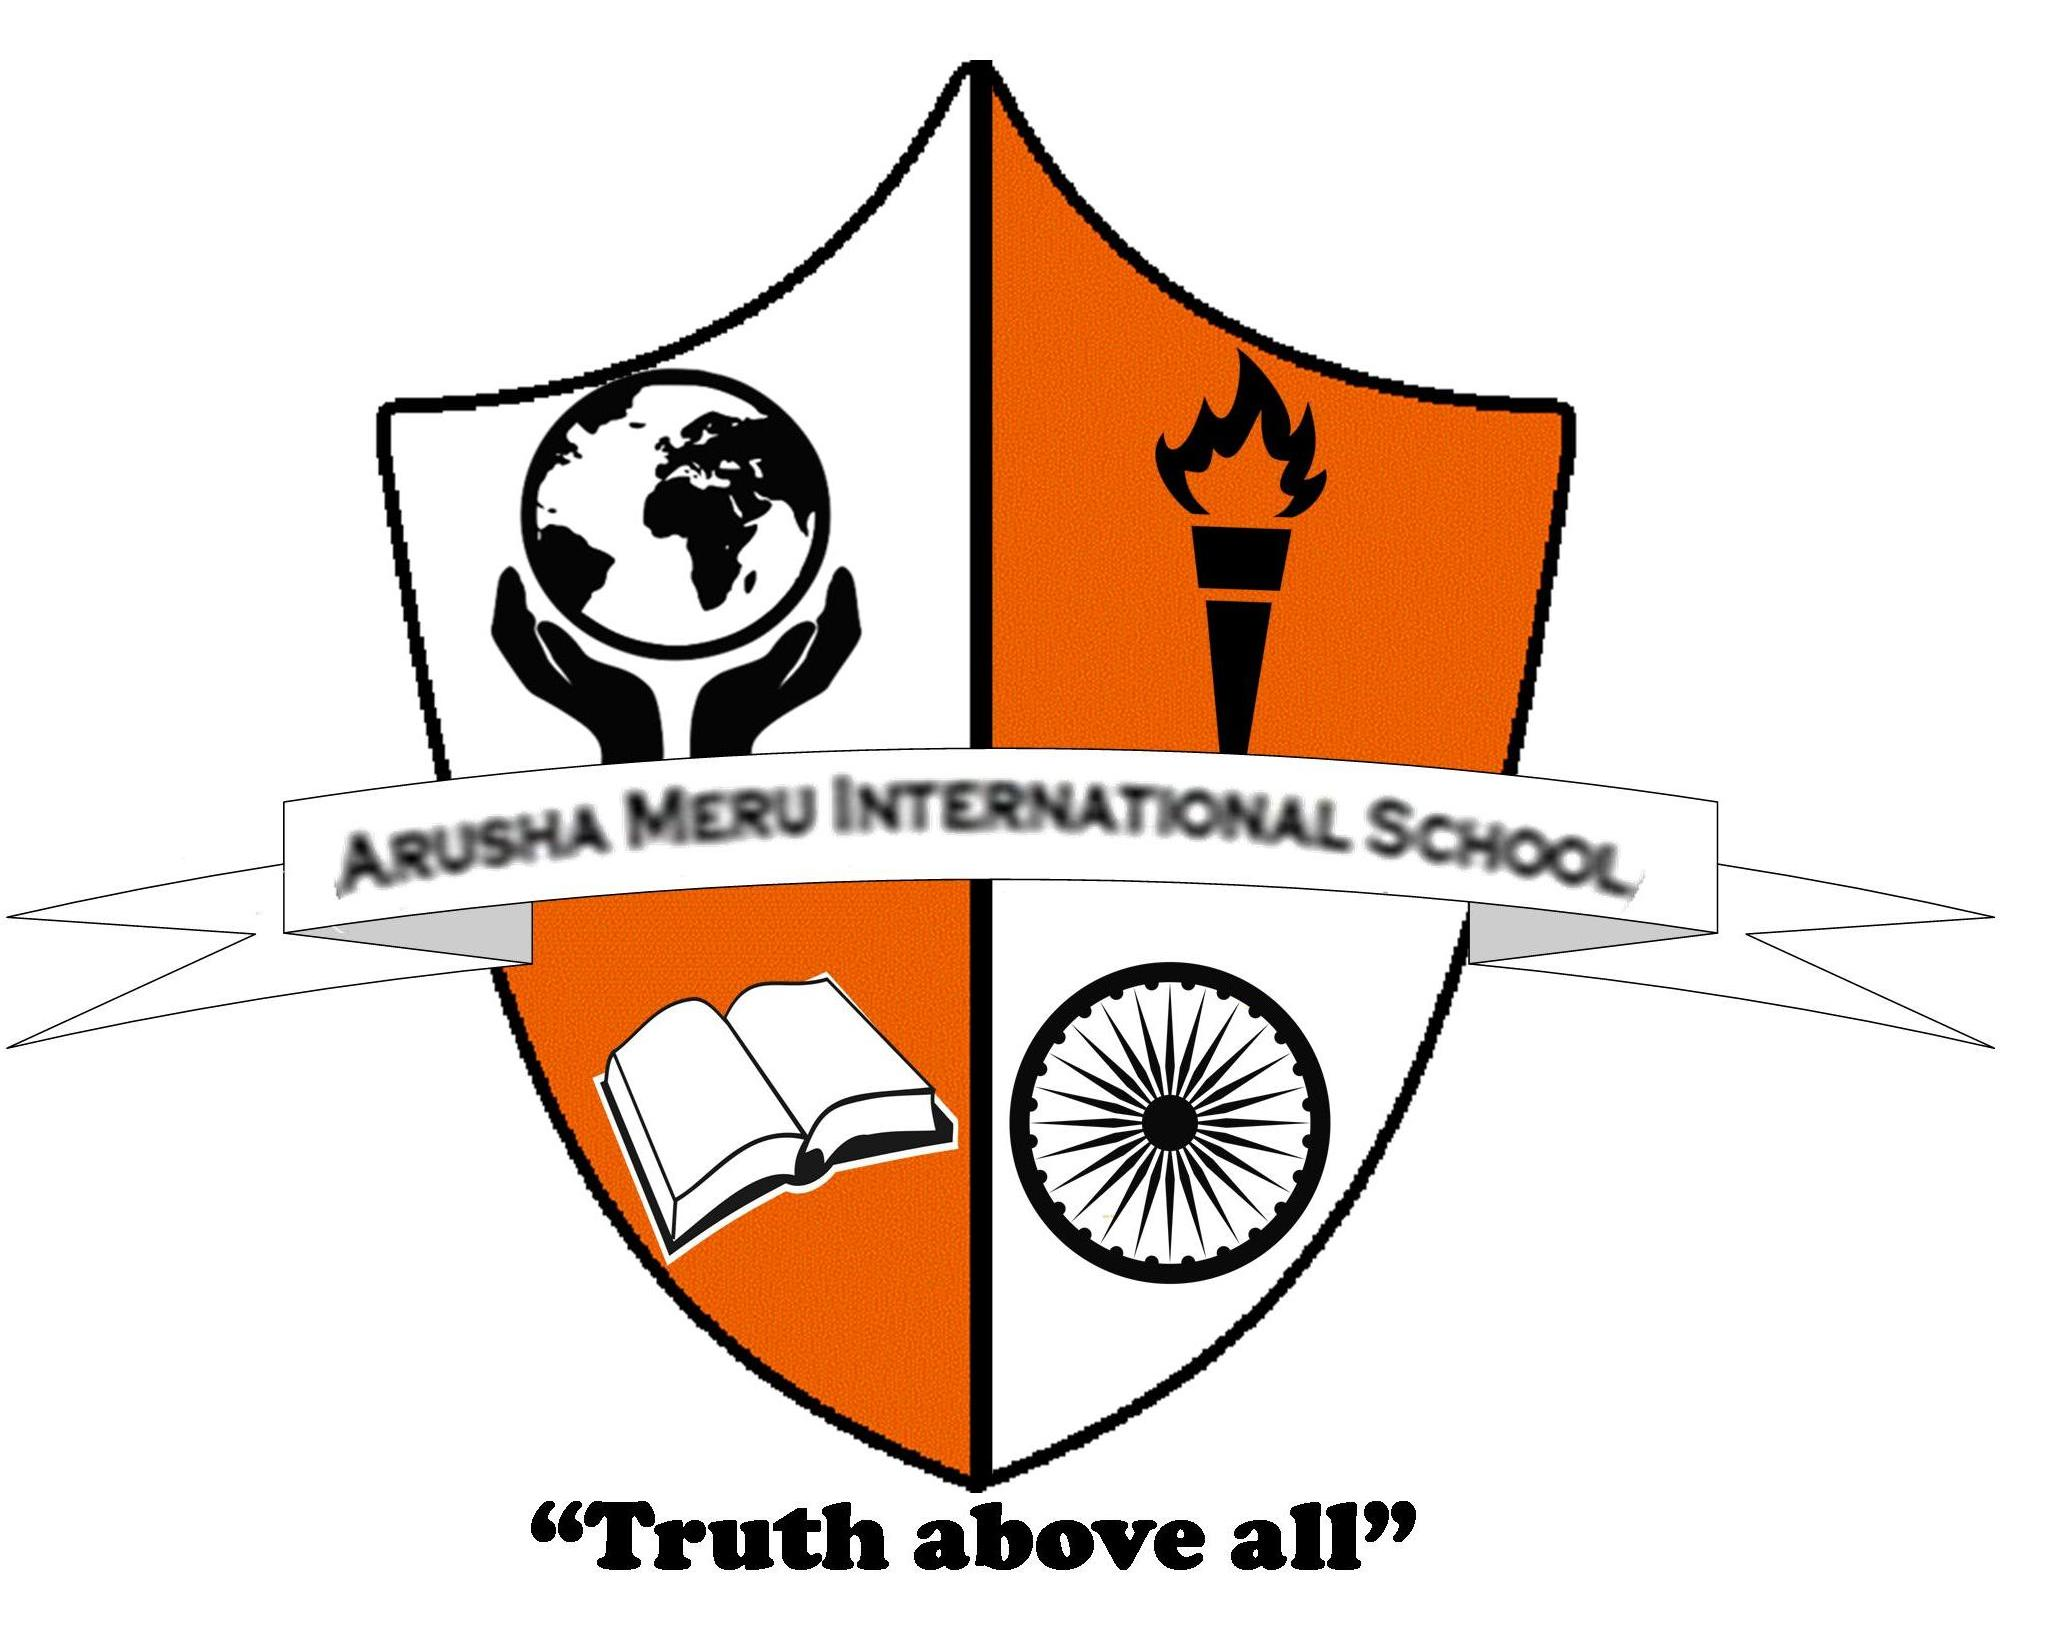 Arusha Meru International School